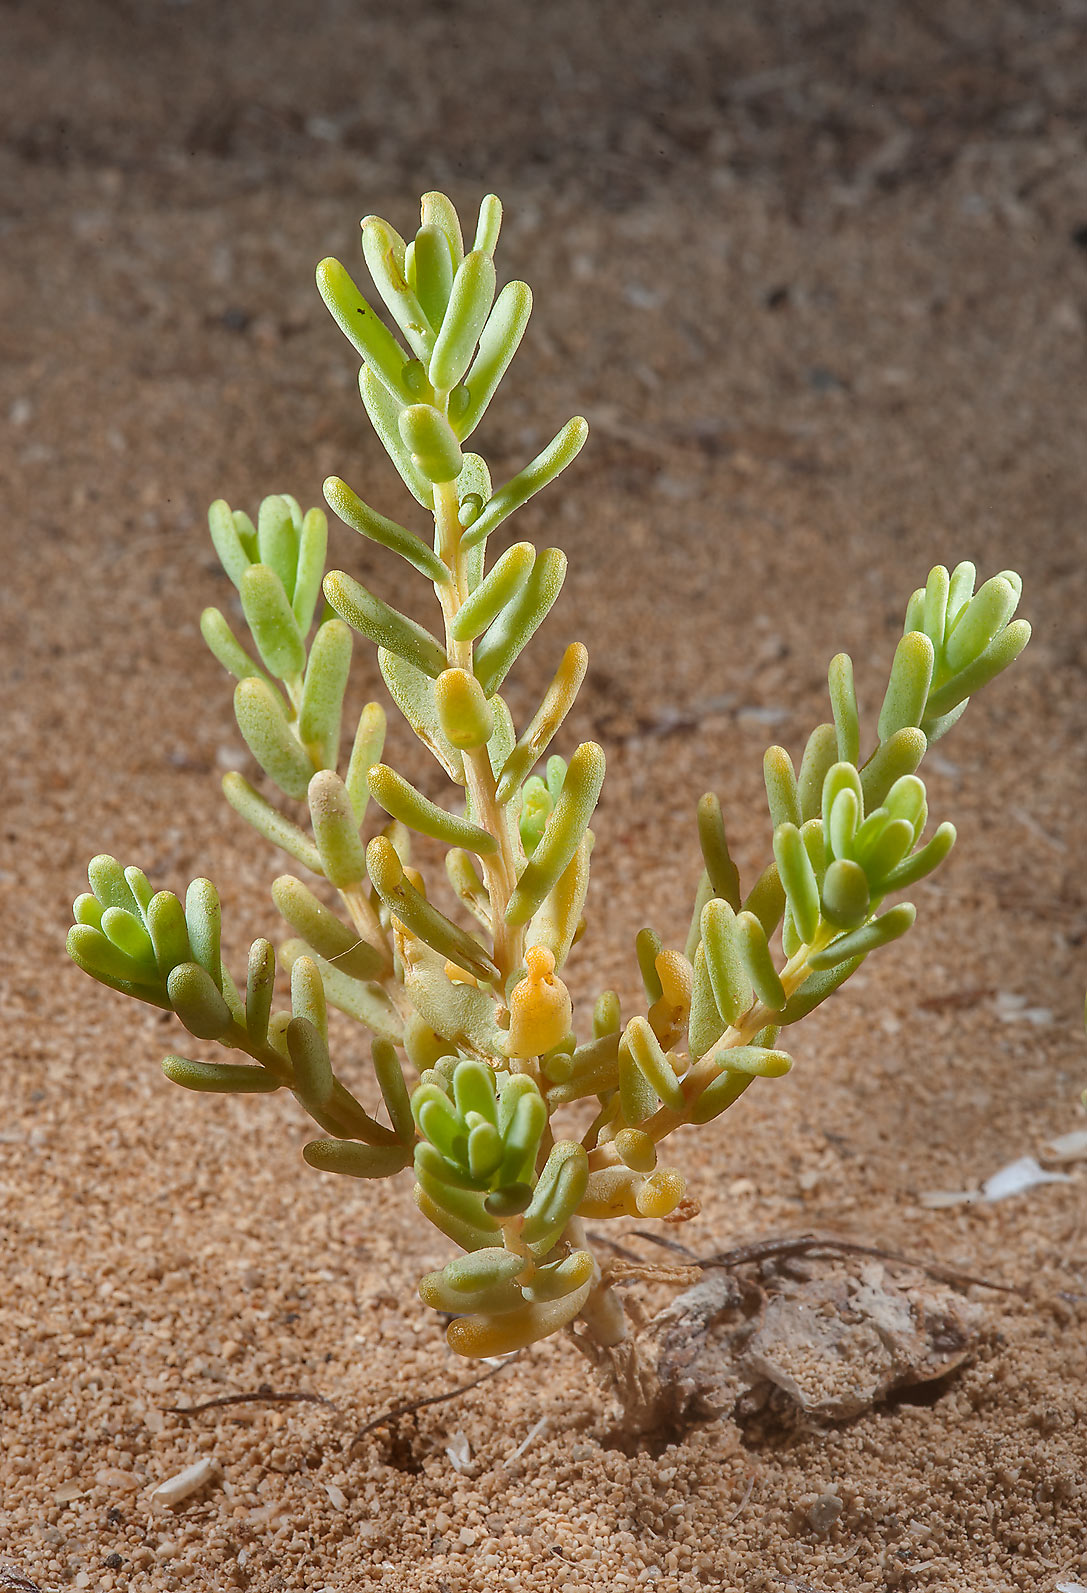 Plant of Bienertia sinuspersici in sand on a...Madinat Al Shamal area. Northern Qatar